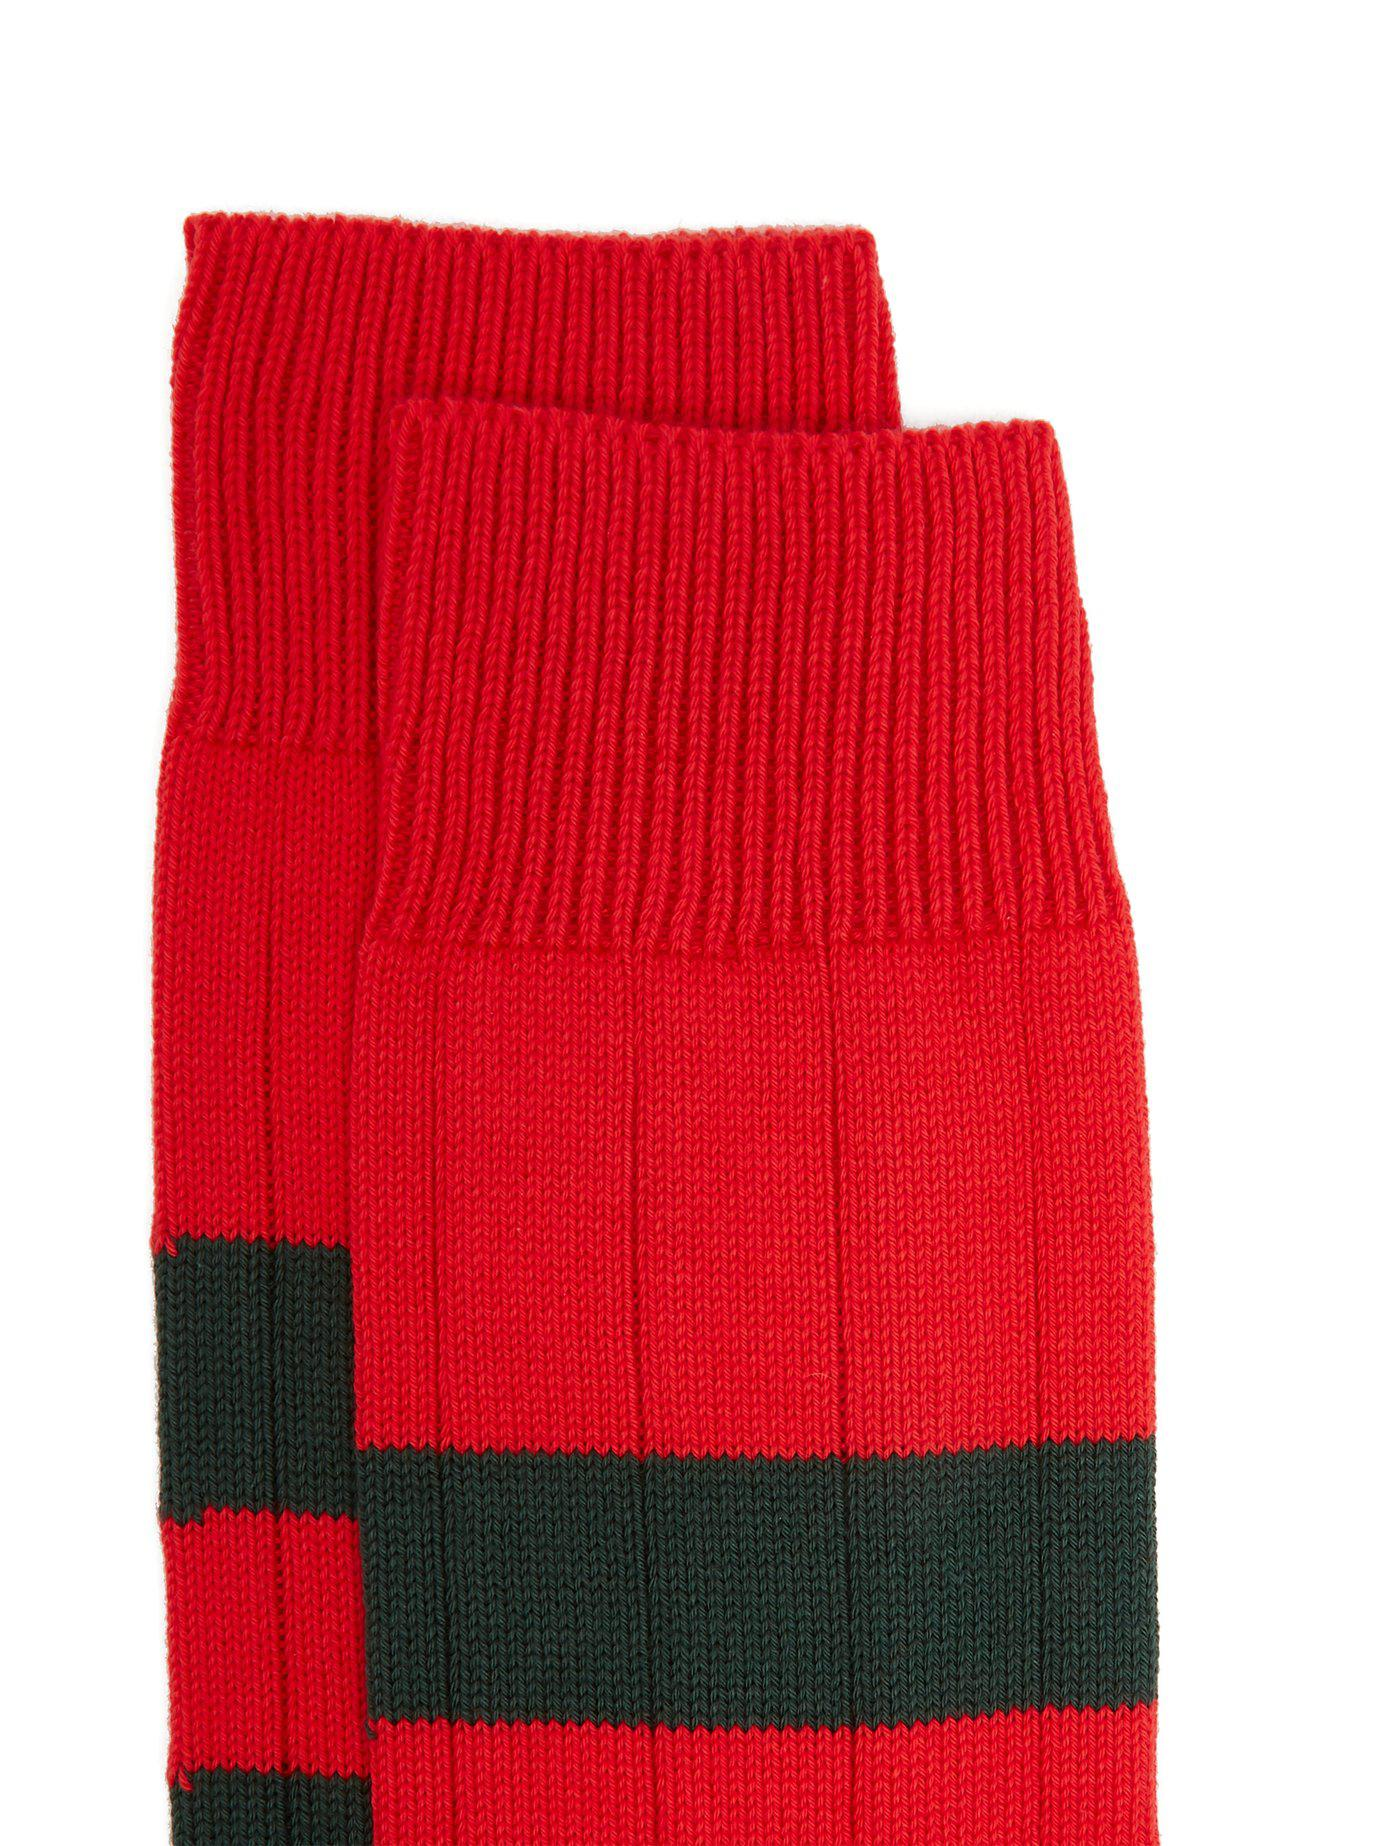 52bc9432798 Lyst - Pantherella Scott Nichol Ely Ribbed Knit Socks in Red for Men - Save  50%